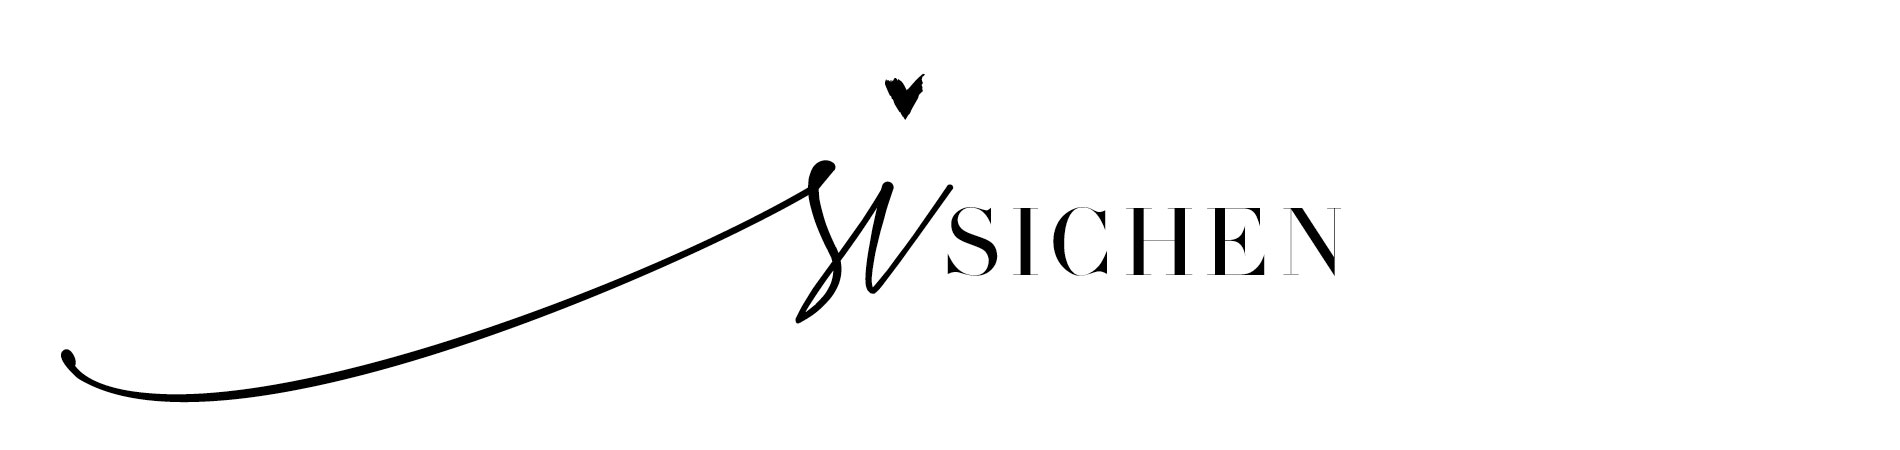 Sisichen - Travel, Fashion & Lifestyle